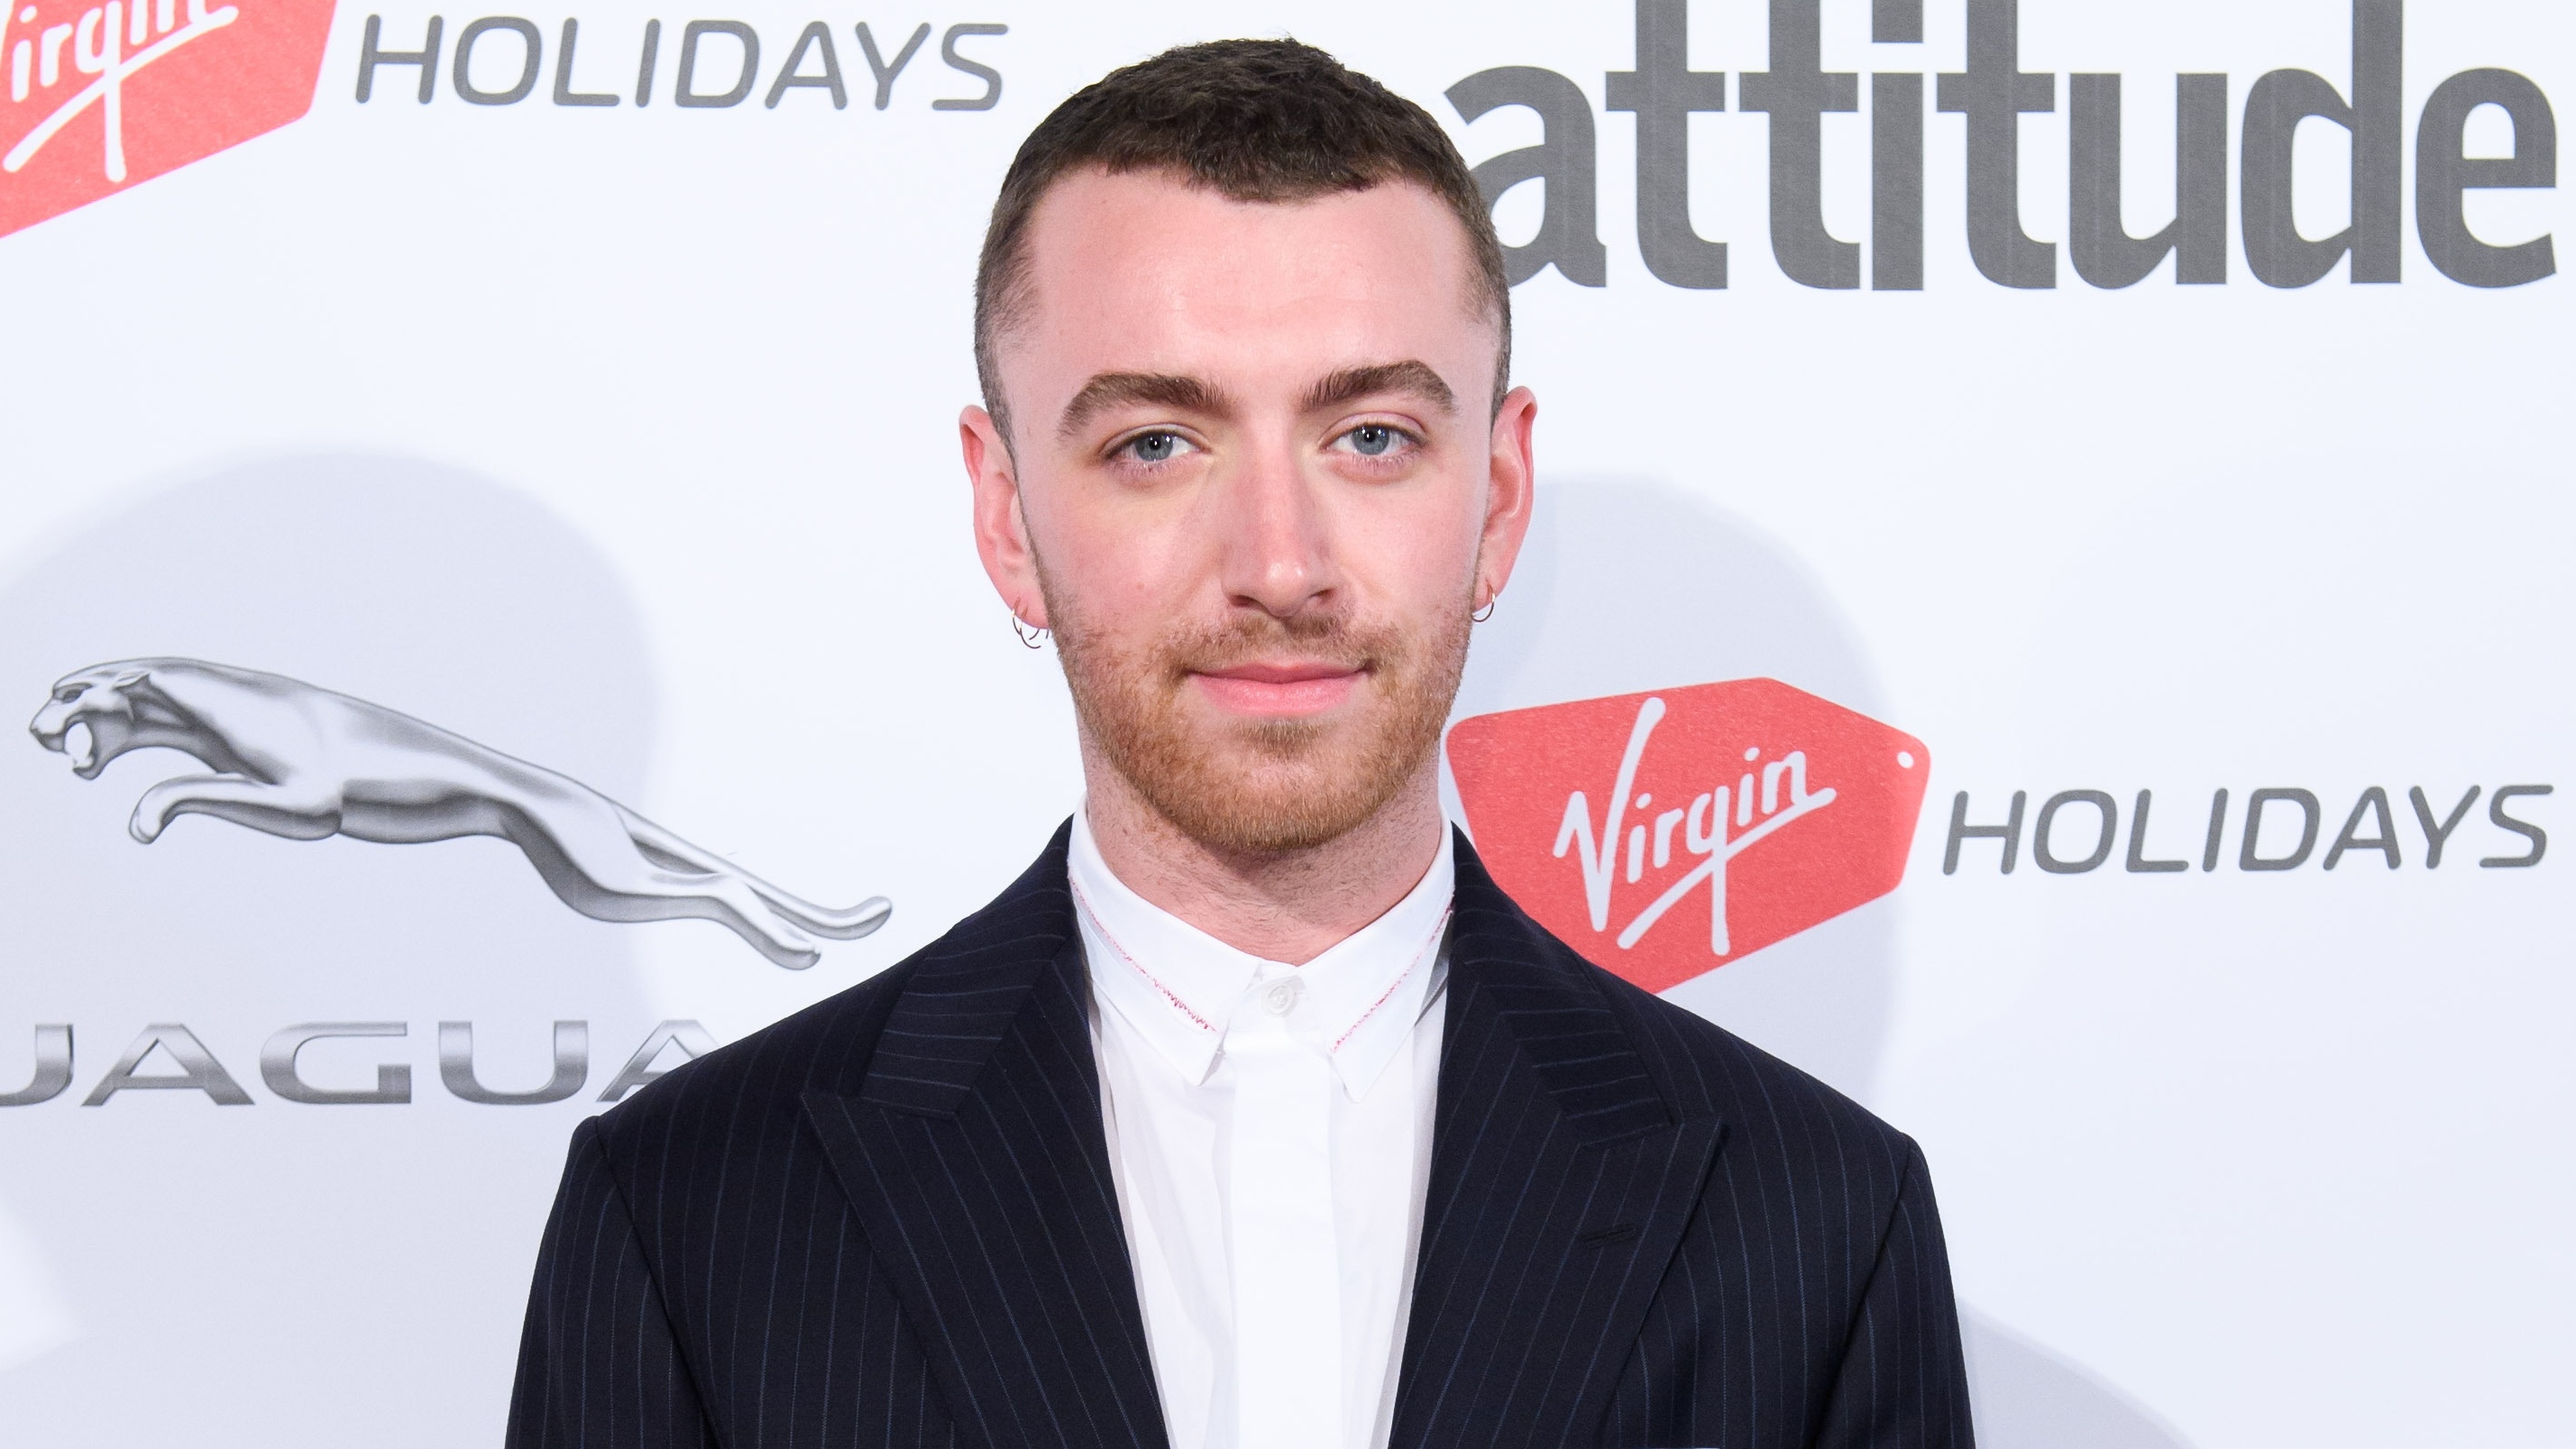 Sam Smith's Heartbreaking New Song Is His 'Most Personal' Yet